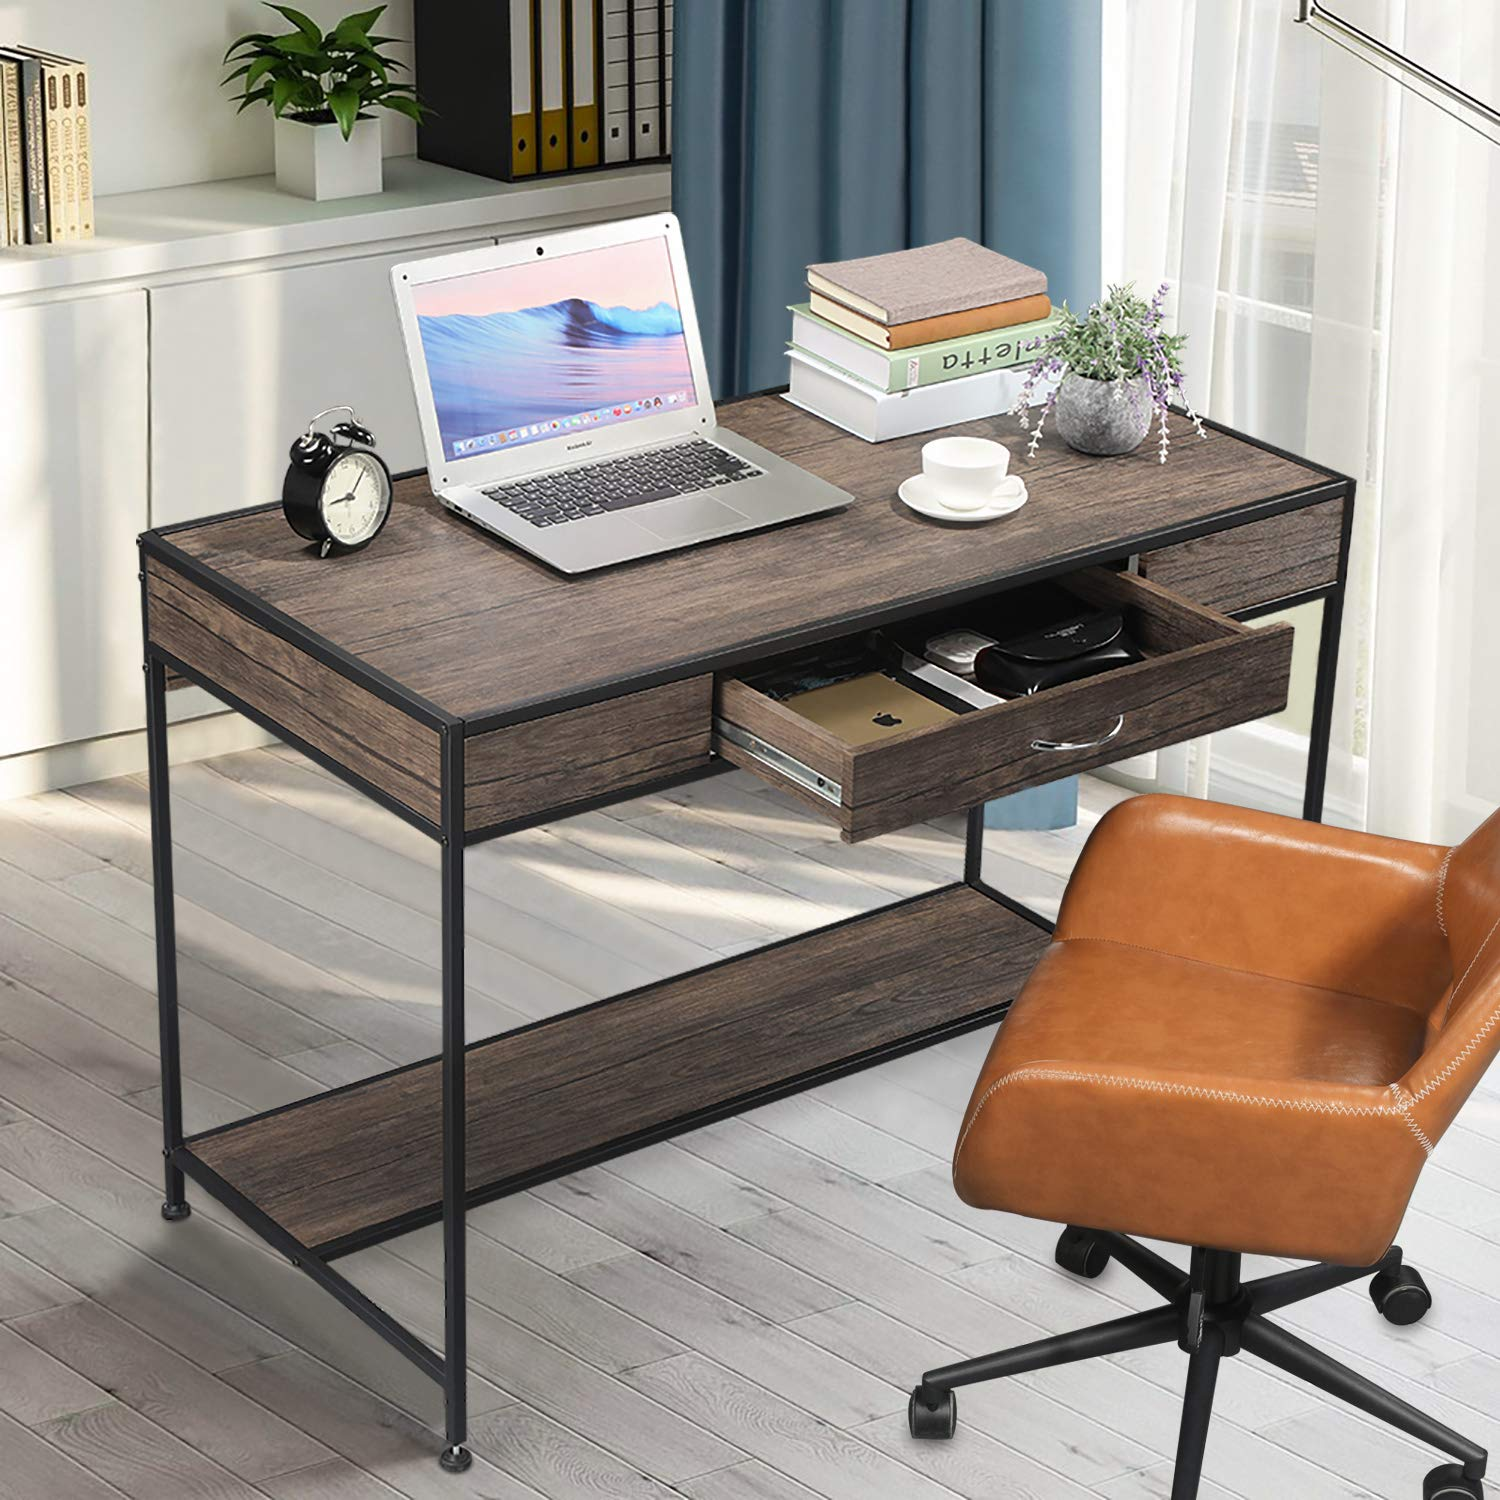 Aingoo Computer Writing Desk with Drawers,Home Office Rustic Metal MDF Wood Mid Century Large PC Table for Brown Farmhouse (Brown) by Aingoo (Image #4)